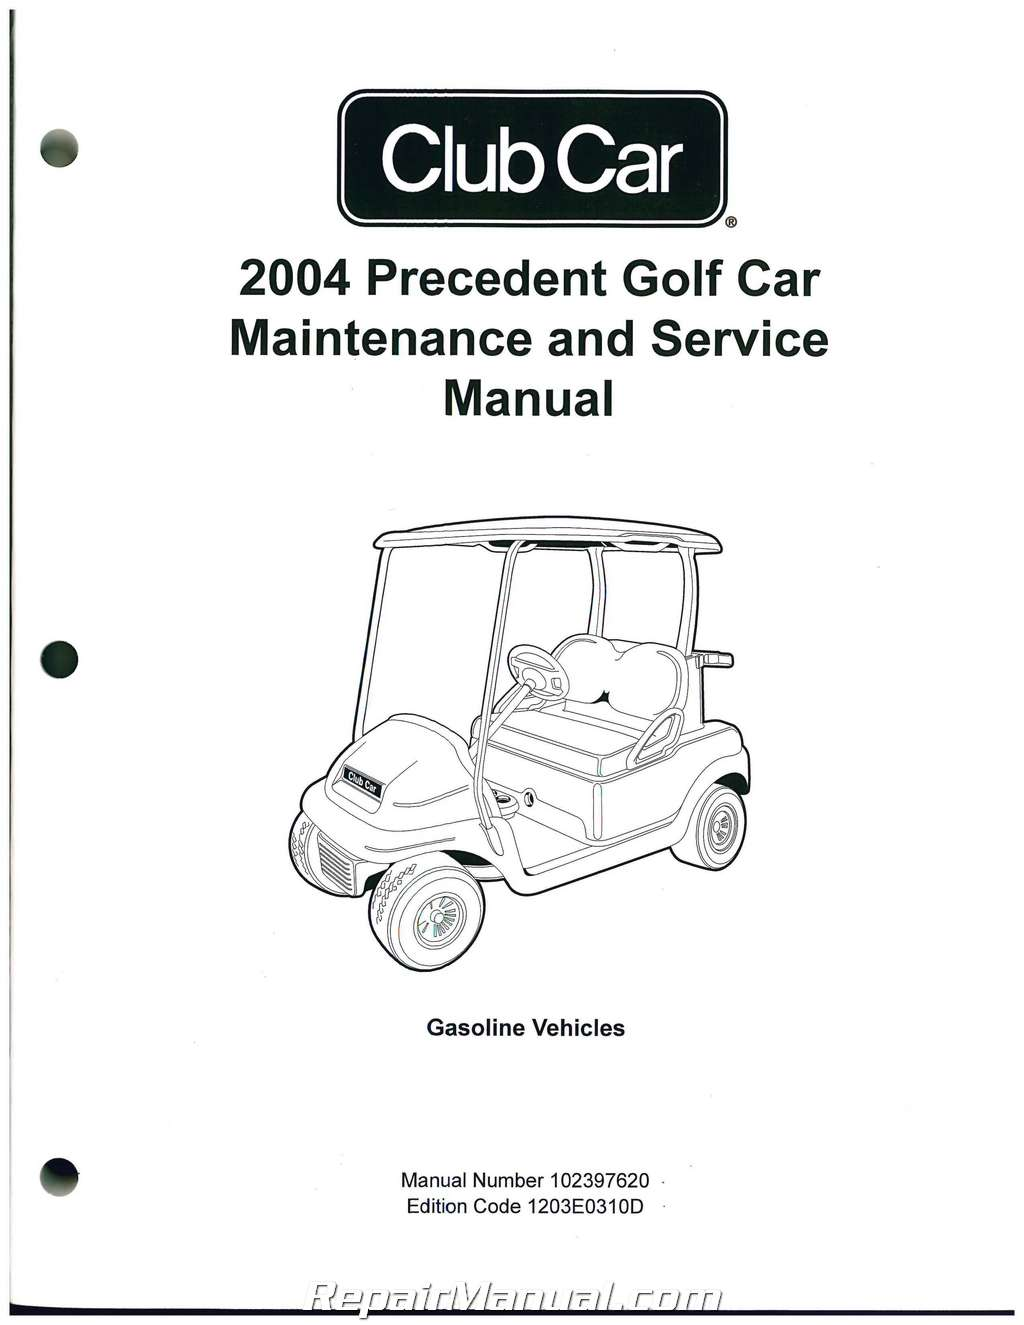 2004 precedent club car golf cart service manual rh repairmanual com 48 Volt Club Car Wiring Diagram Club Car 48 Volt Charger